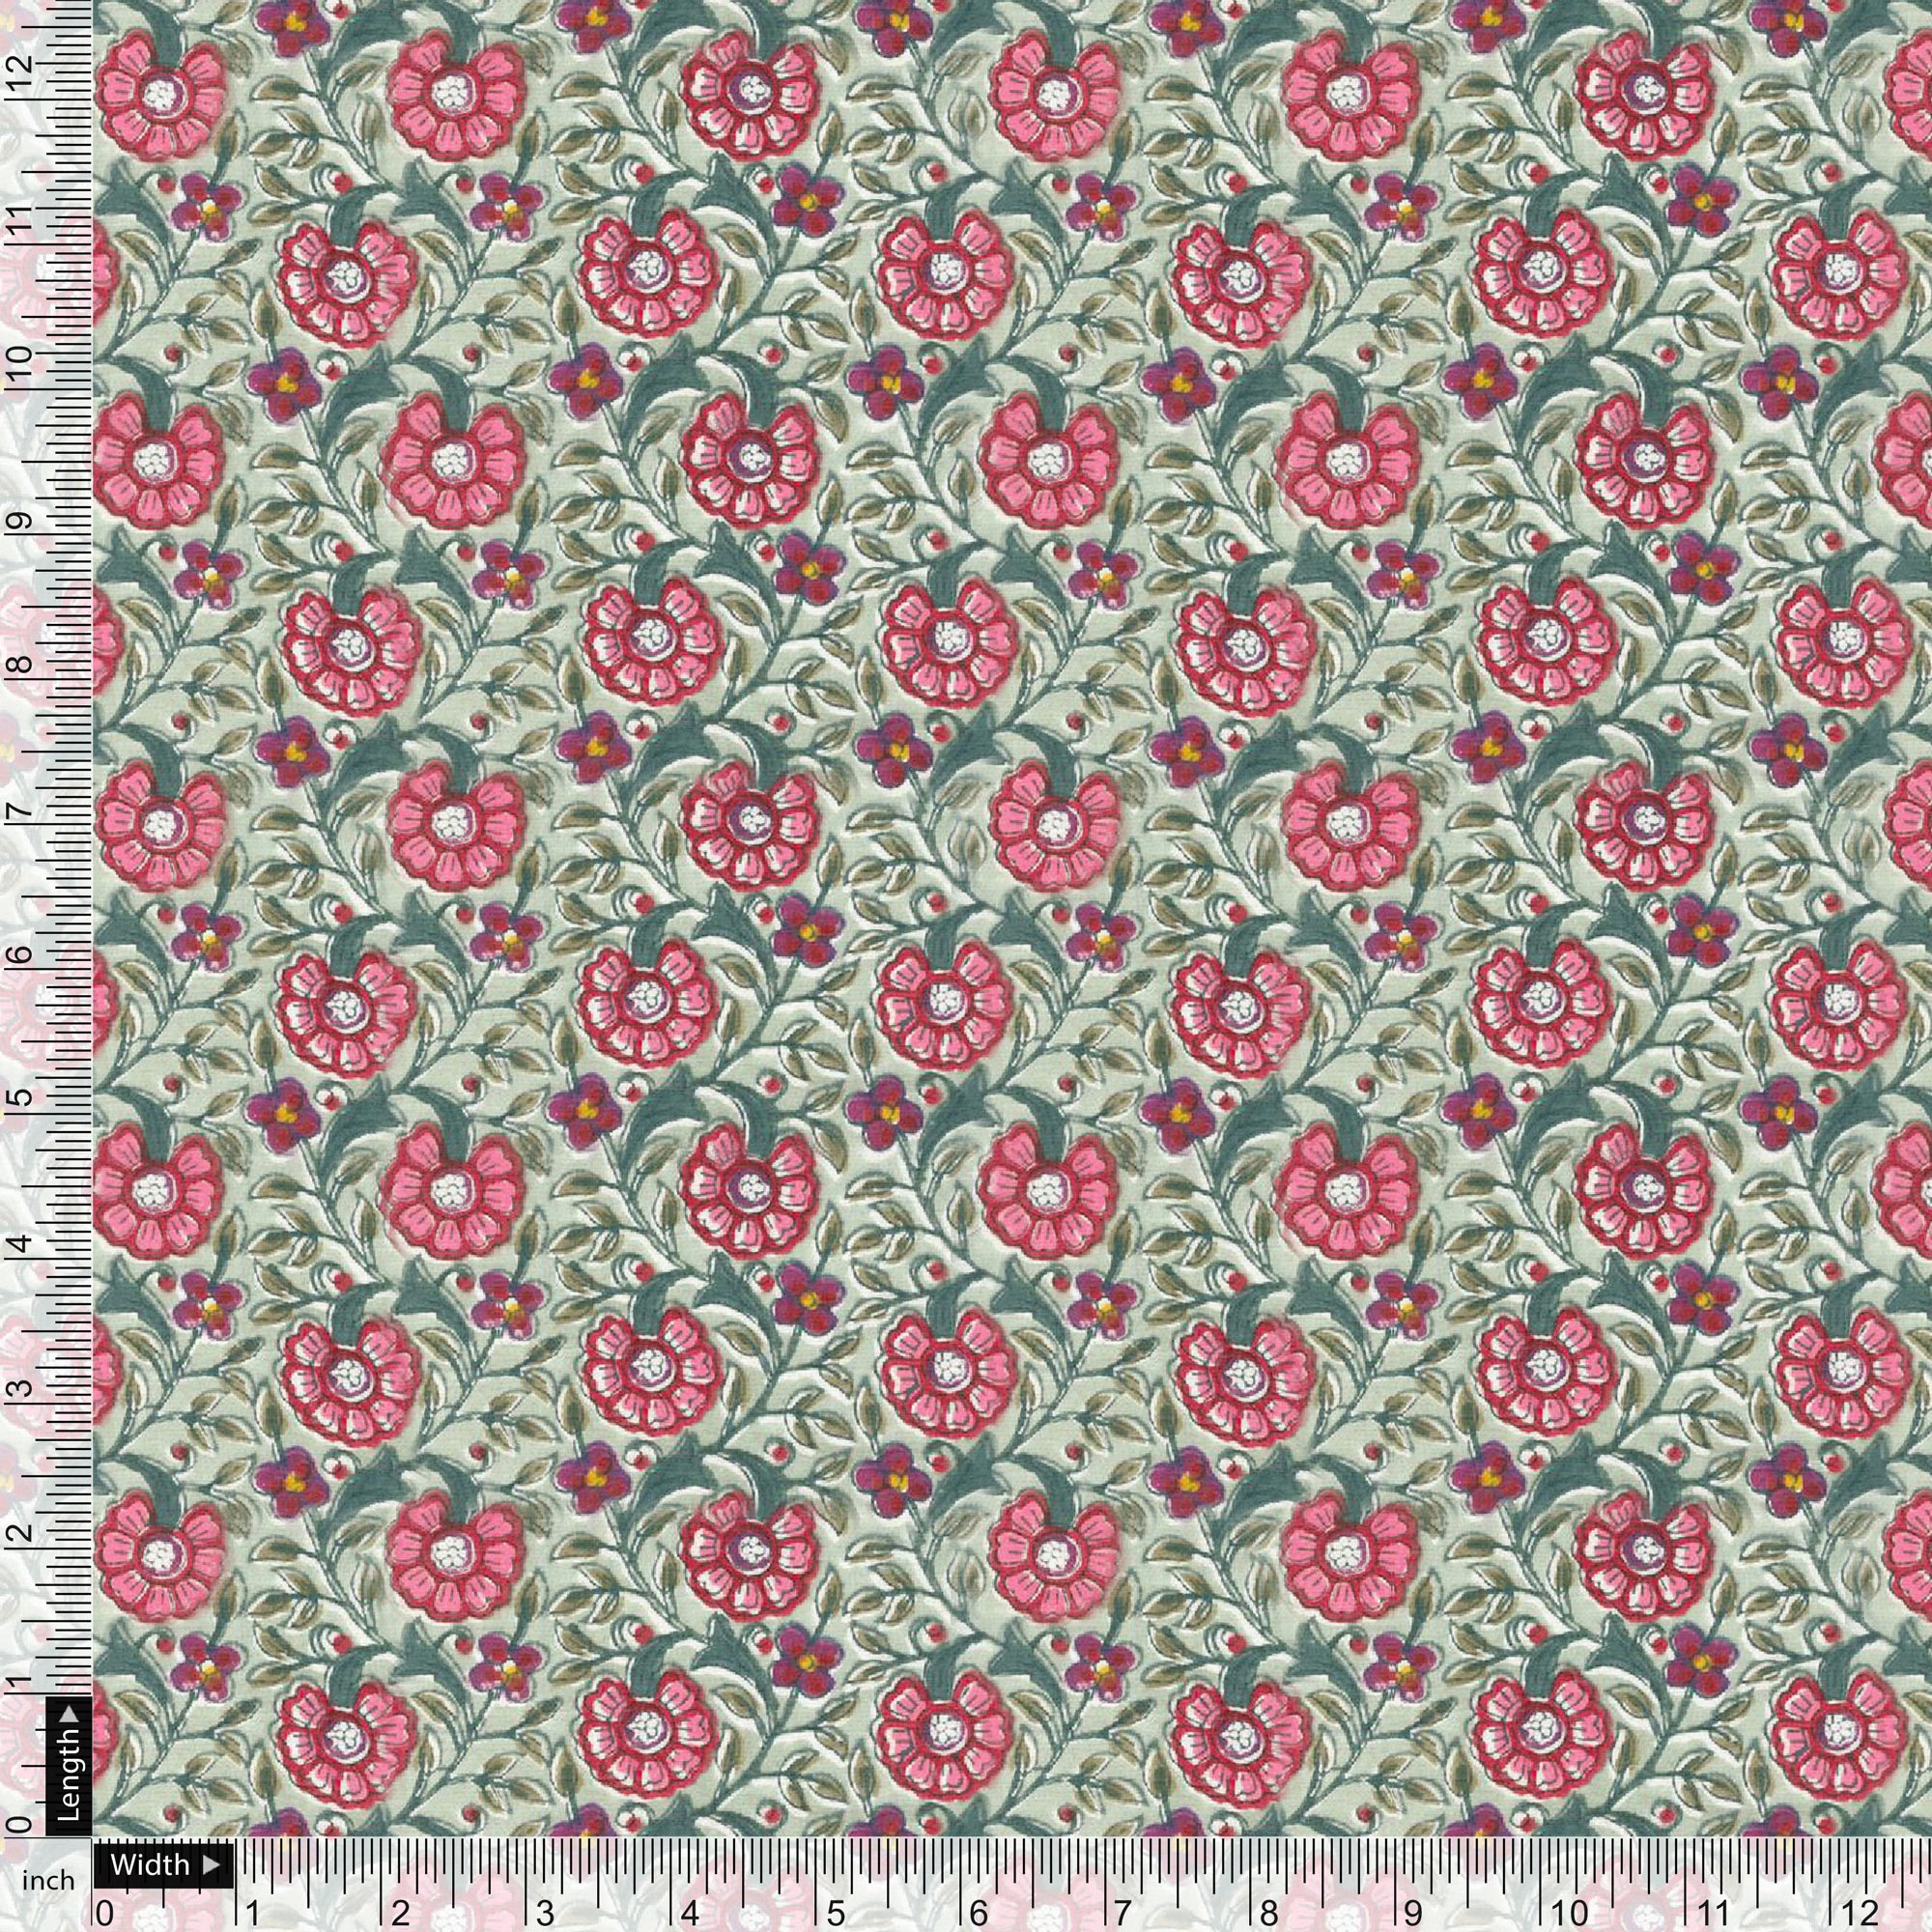 Beautiful Floral Ditzy Pattern Digital Printed Fabric - Wholesale FAB VOGUE